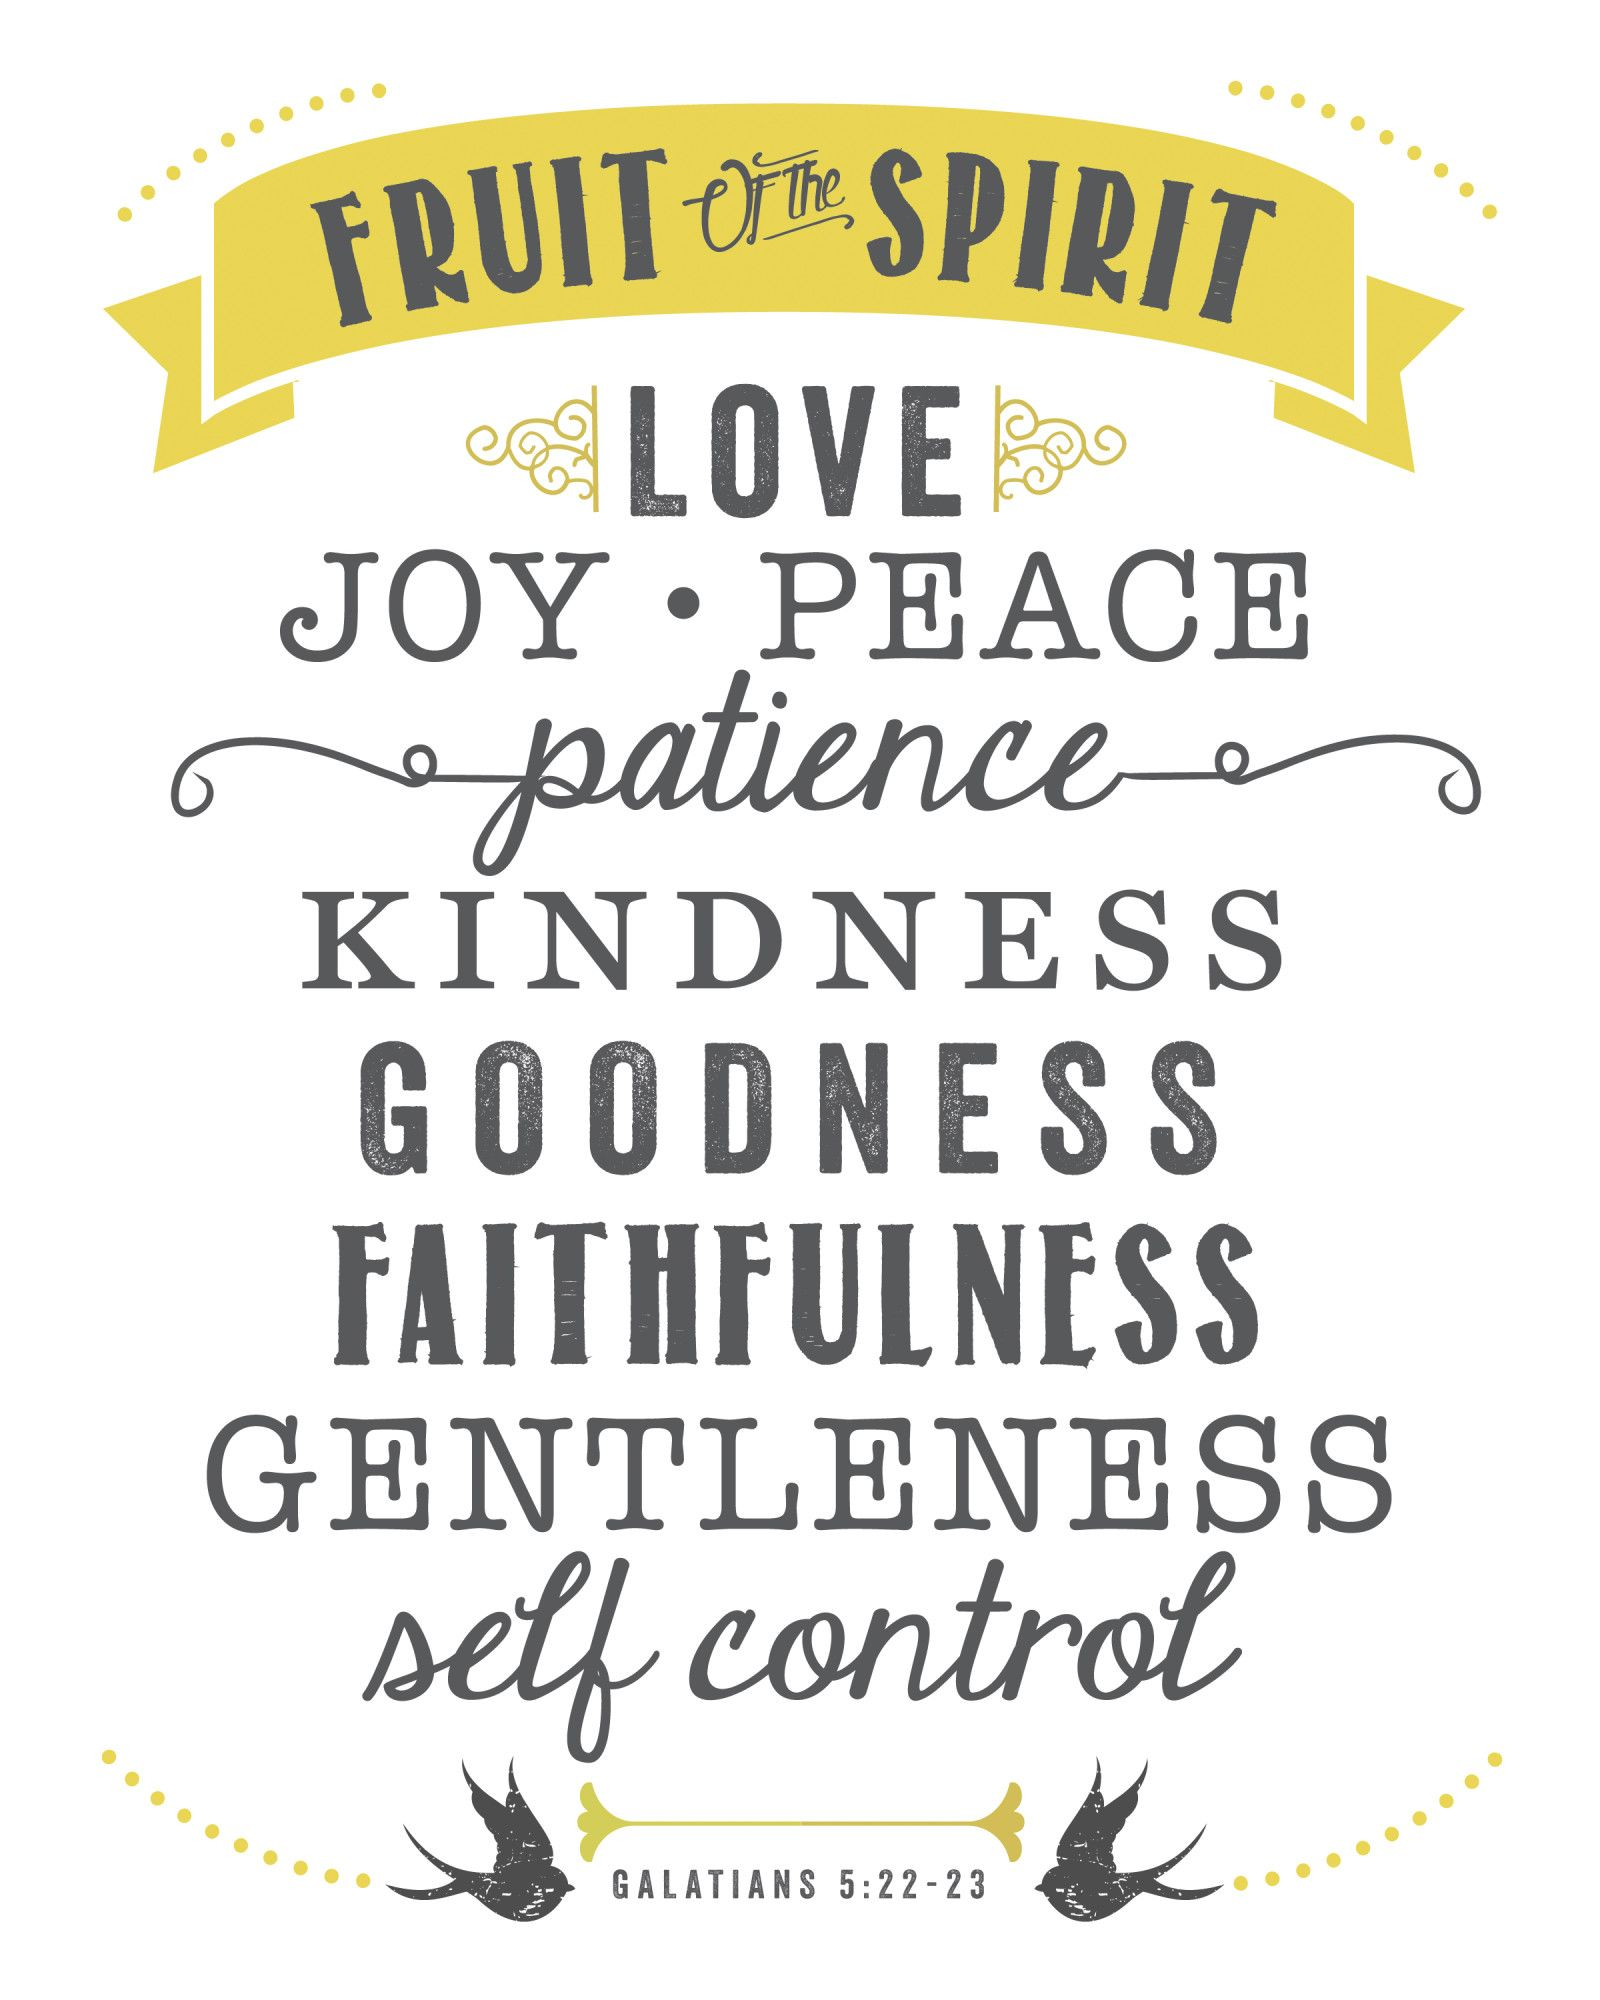 image about Fruits of the Spirit Printable named Pin upon Do-it-yourself Suggestions